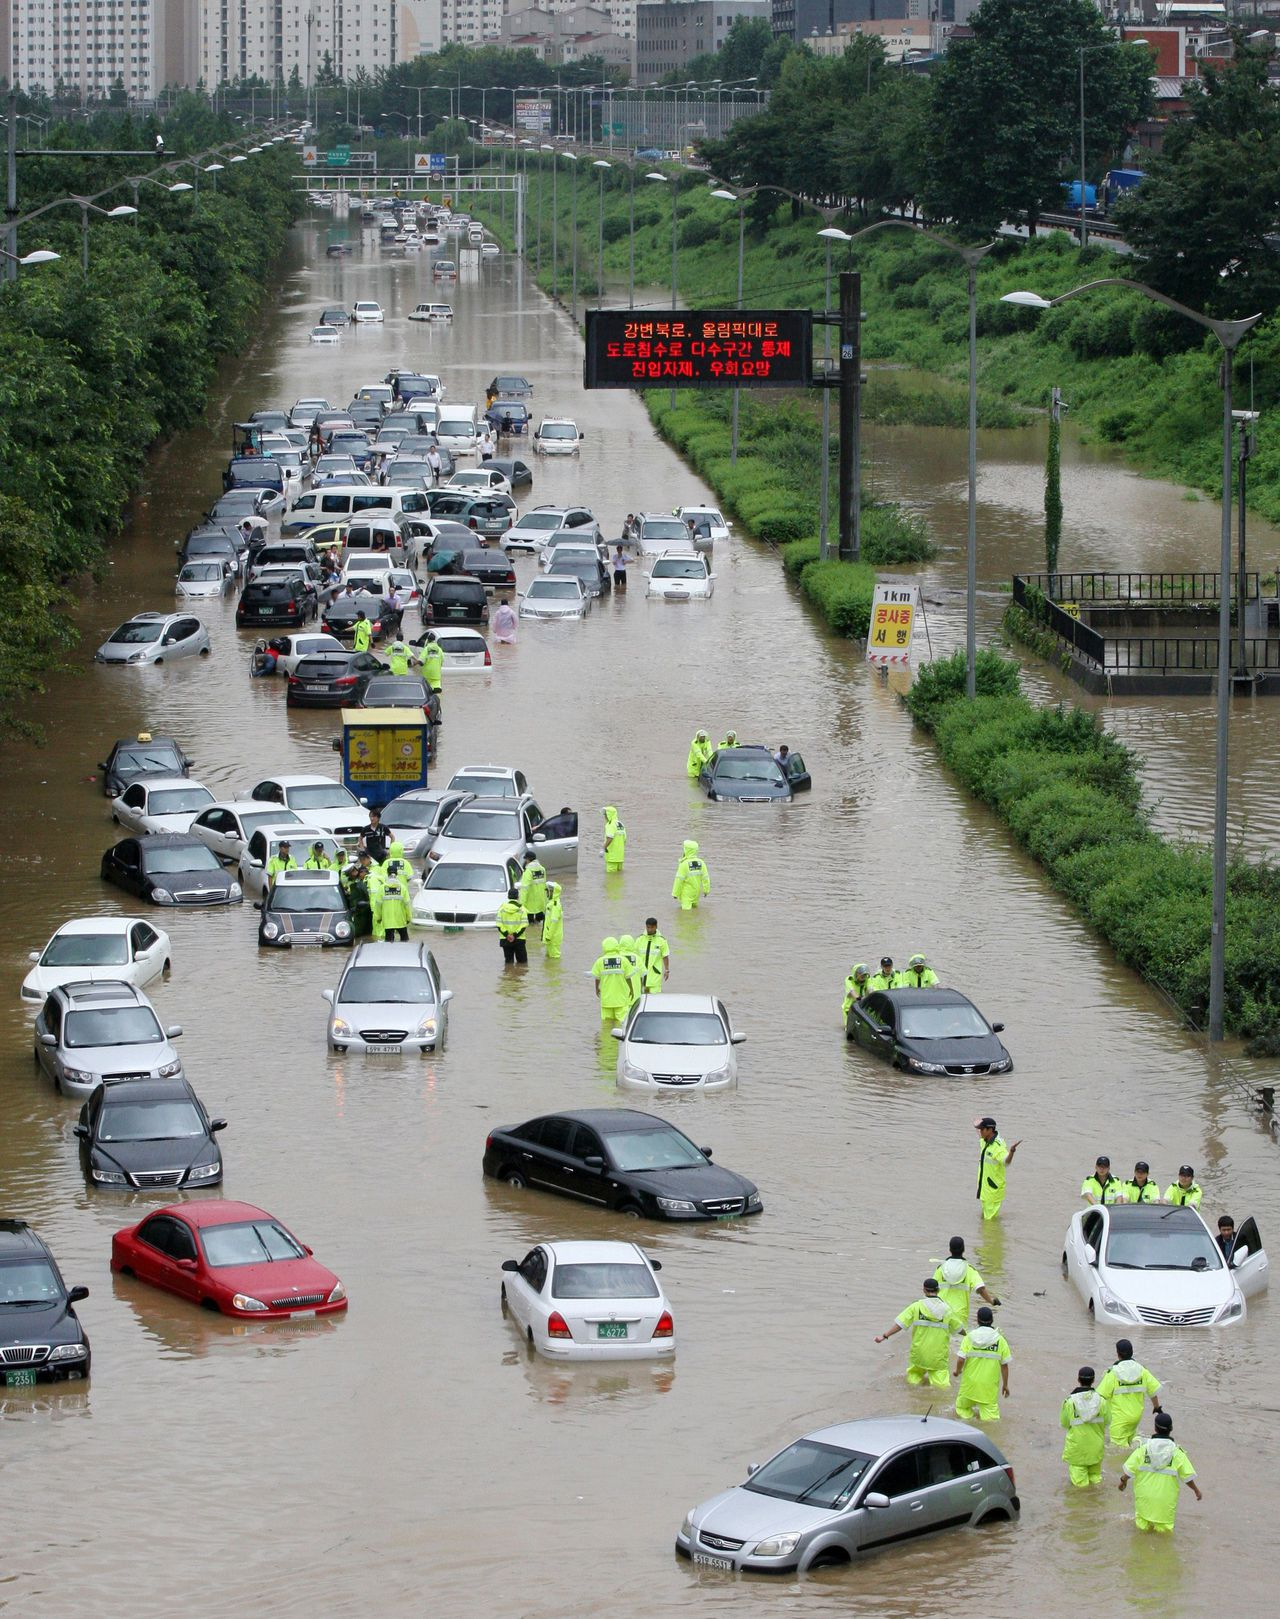 Cars are submerged by floodwaters along a street after heavy rains hit the Seoul region on July 27, 2011. Torrential rain pounding South Korea triggered landslides which killed 22 people, flooded hundreds of homes and turned main roads into rivers of churning, muddy water. AFP PHOTO / YANG HOE-SEONG